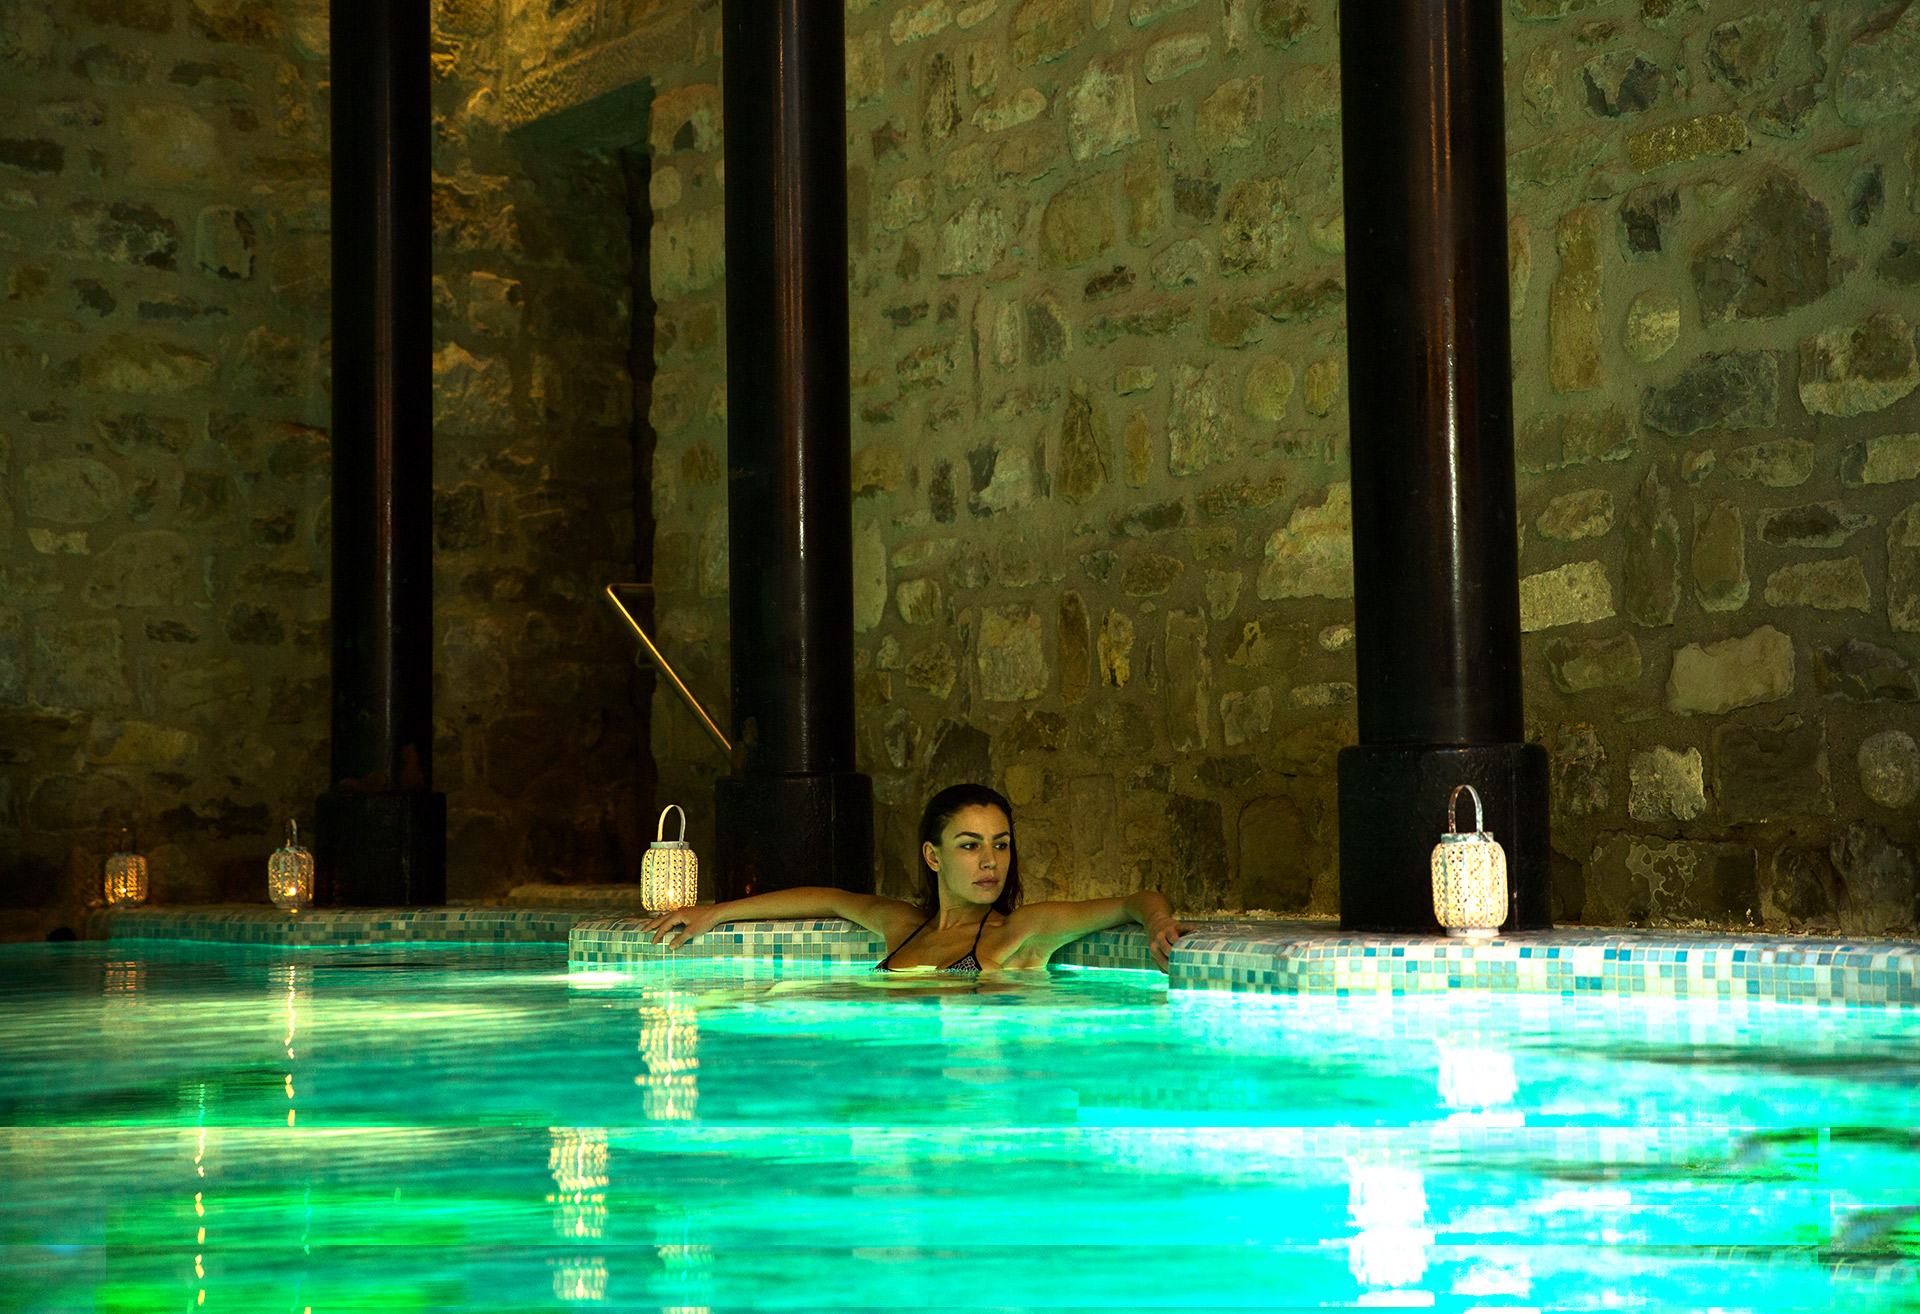 SPA Hotel in Emilia Romagna for your Wellness Holiday